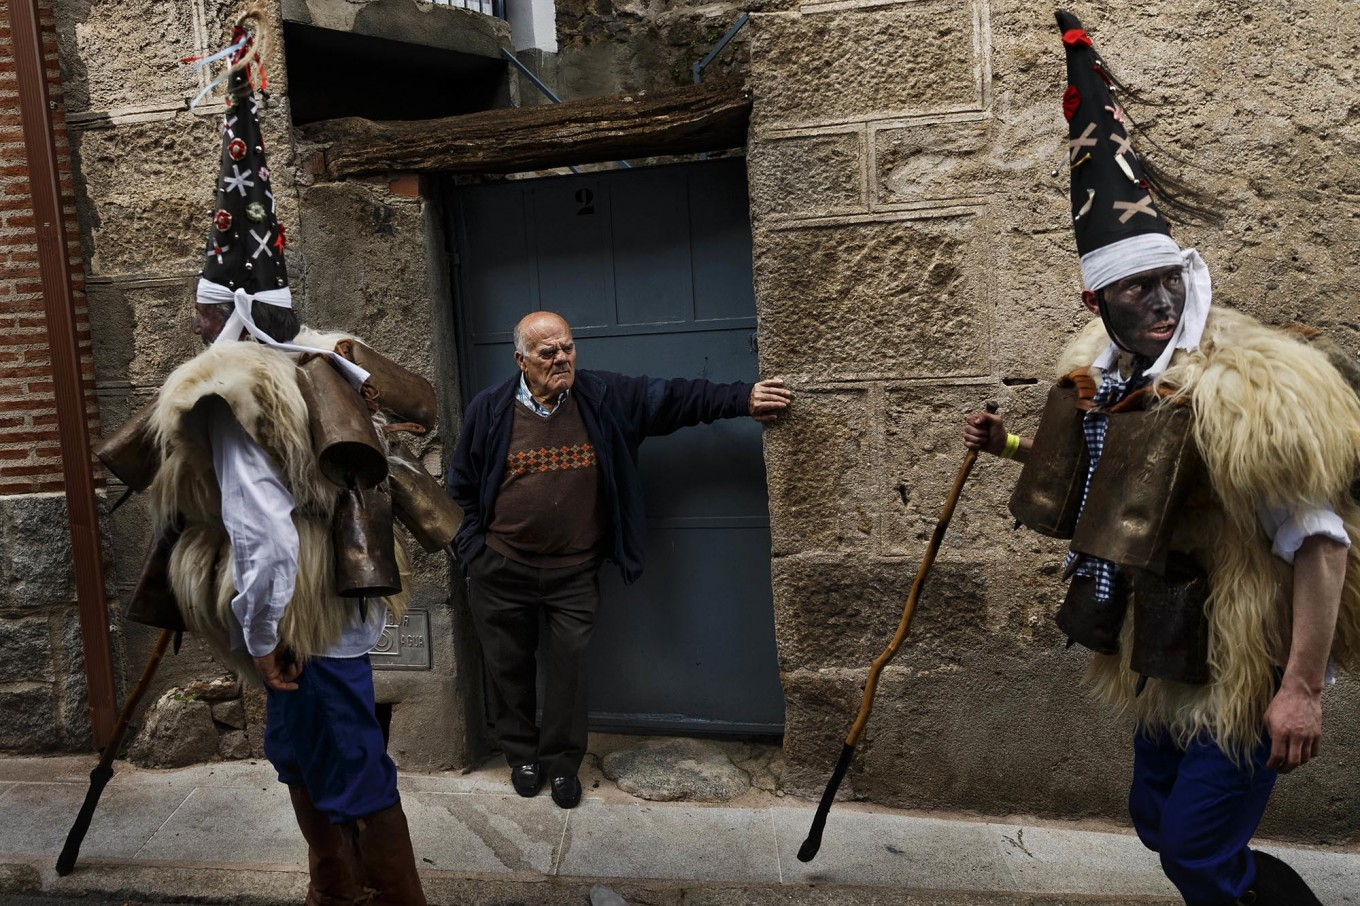 In this April 1, 2017 picture a man representing a wild bear runs through 'Zarramacos' ringing their cowbells in representation of the traditional carnival of La Vijanera de Silio during a gathering of different villages' carnival masks and characters, in Casavieja, Spain, Monday, April 3, 2017. These festivals, held across central and northwestern Spain, most often coincide with festivities celebrating the advent of spring, mixing Carnival and bizarre pagan-like rituals with mock battles between good and evil. AP /Daniel Ochoa de Olza